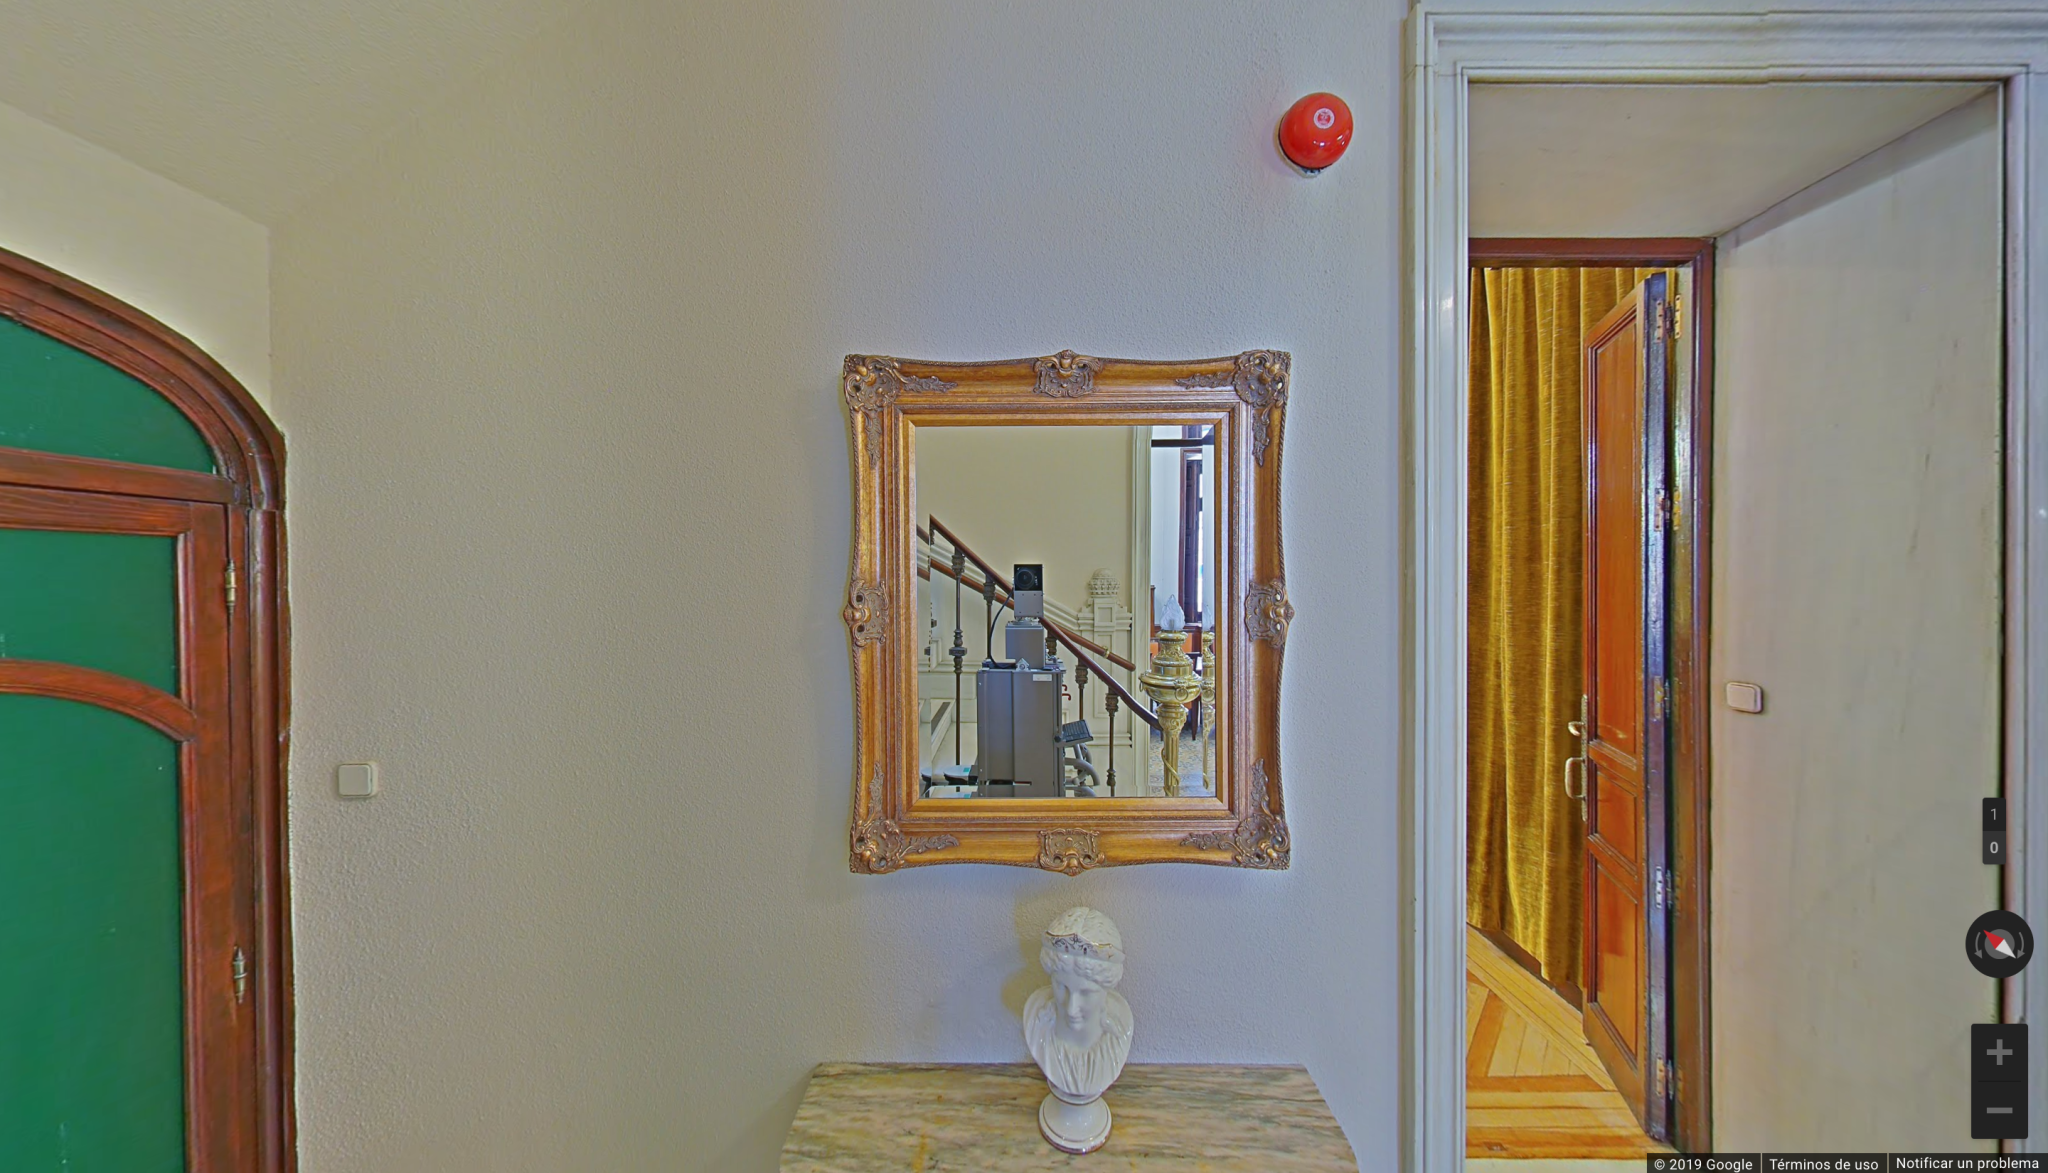 Robotic camera takes picture of itself in mirror at museum